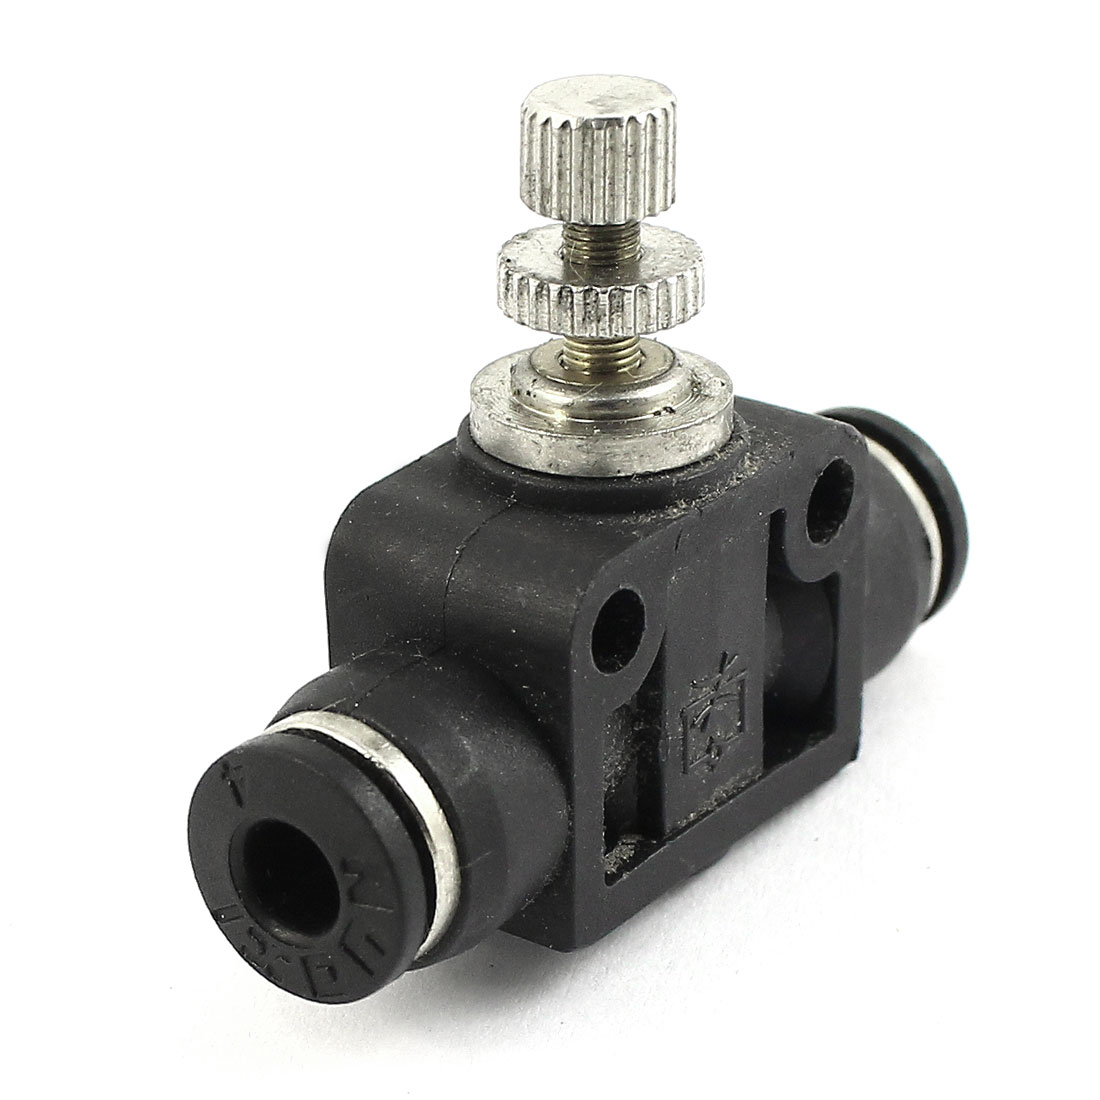 4mm to 4mm Tube Pipe Connector Straight Pneumatic Quick Adapter Speed Control Controller Valve